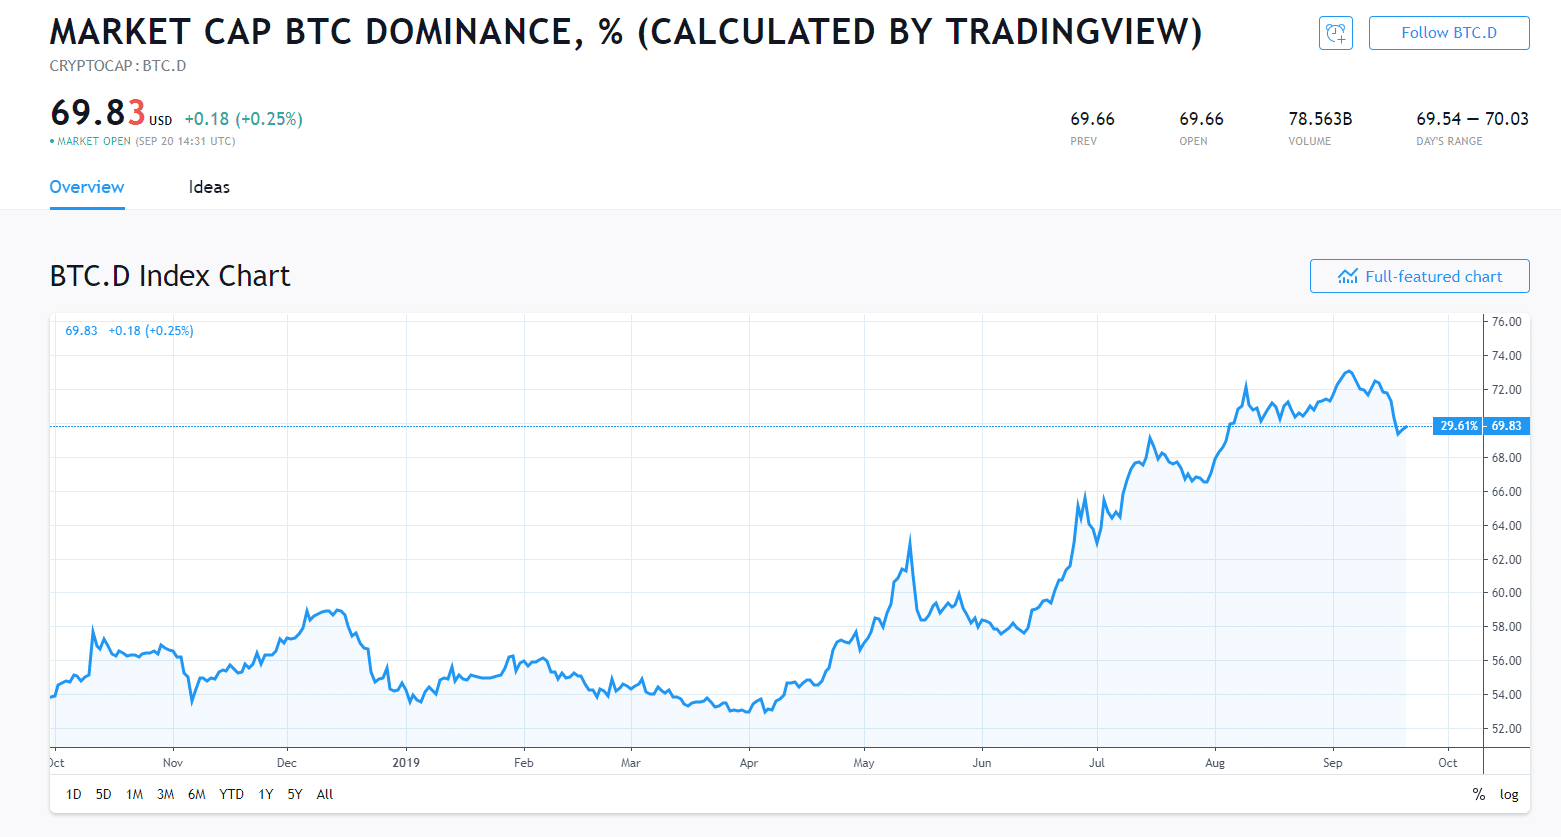 Dominance bitcoin vs Altcoin